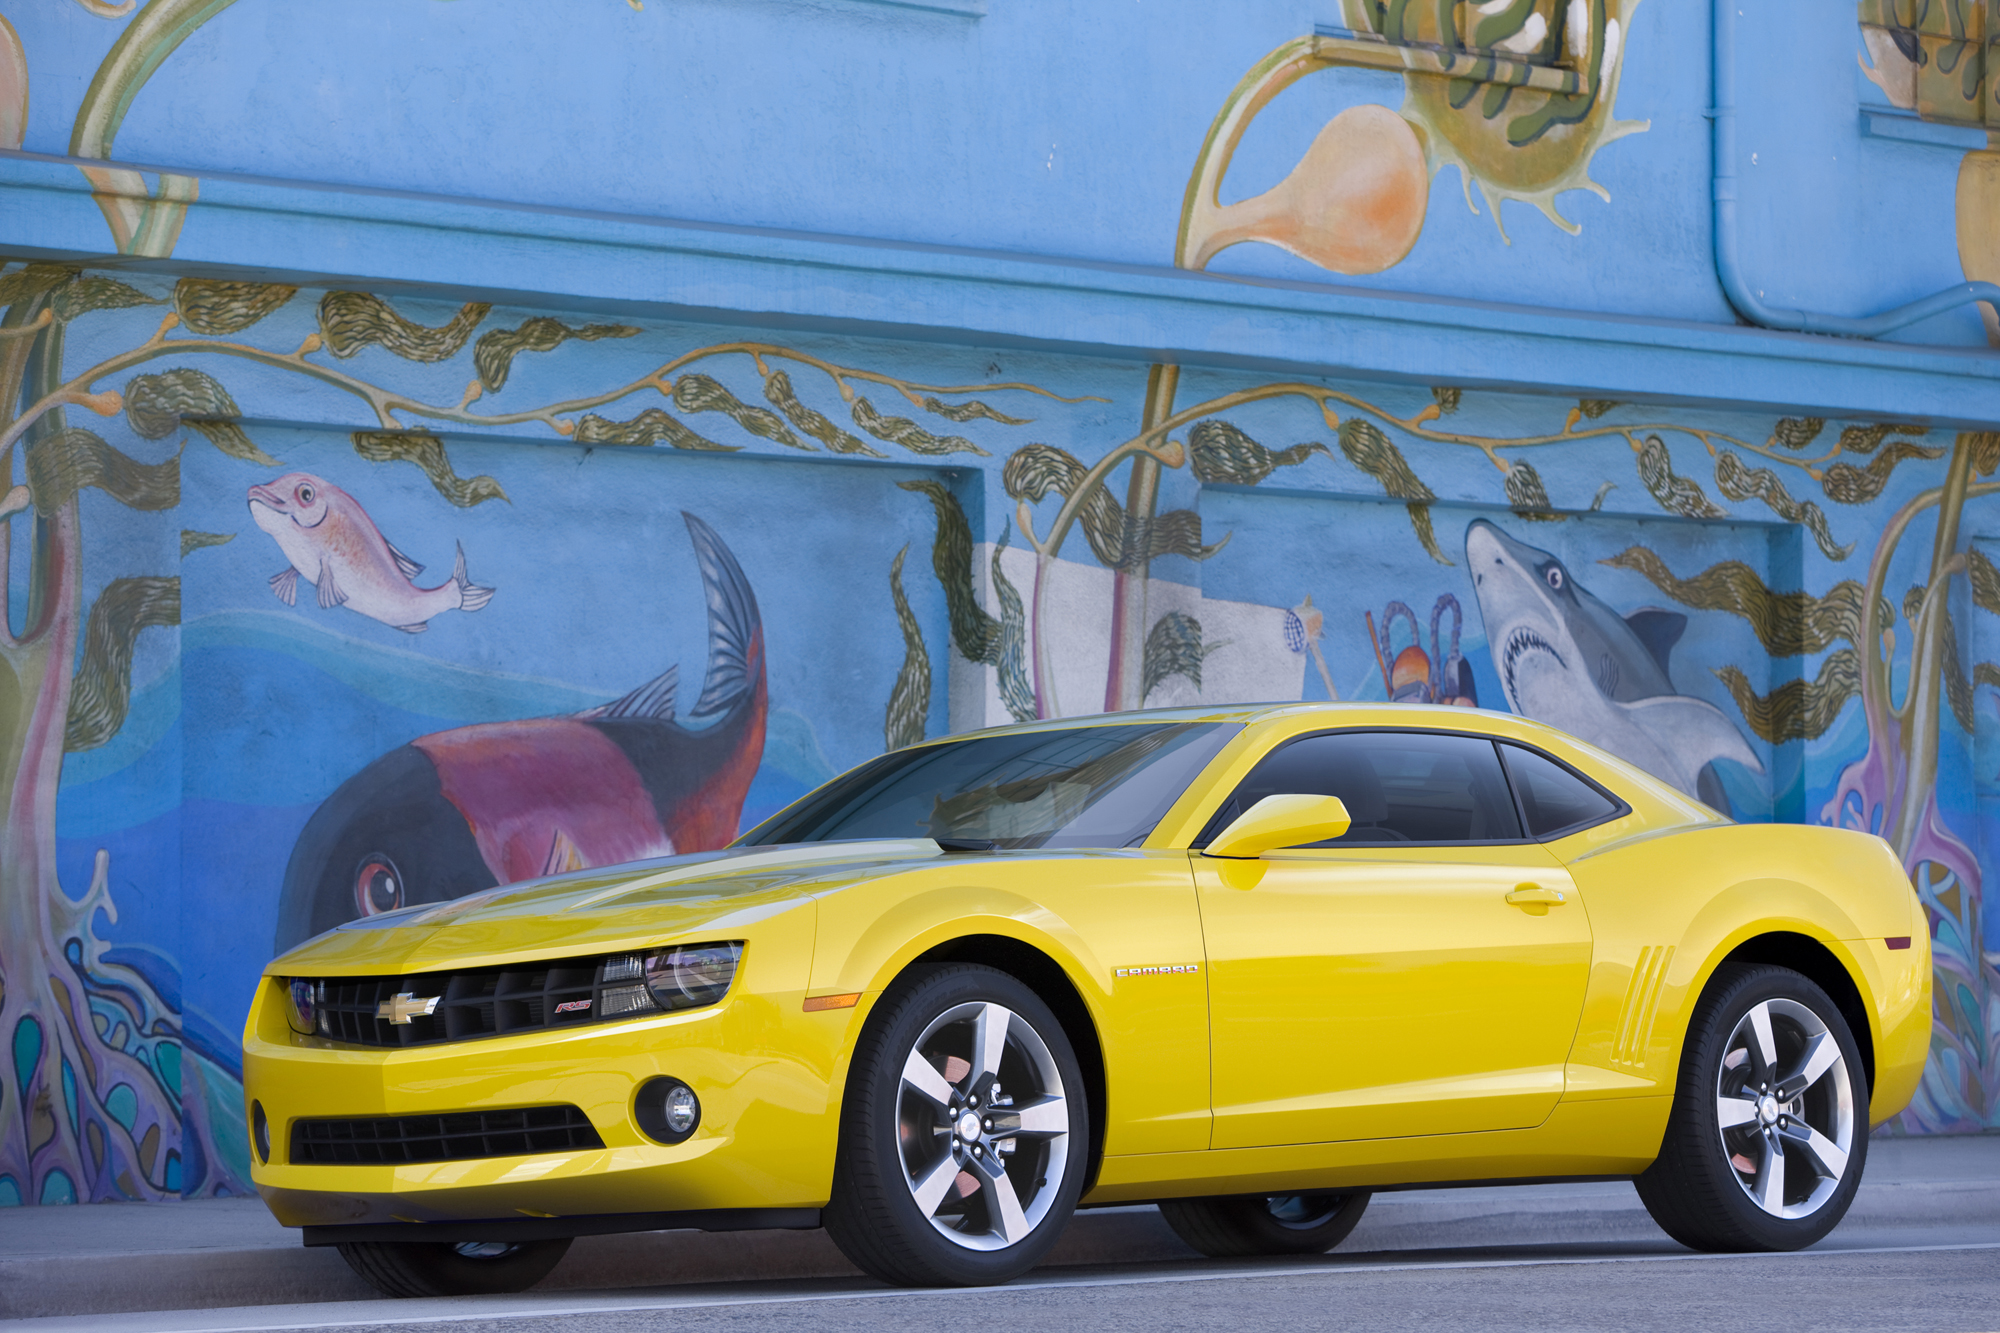 Official 2011 Camaro Wallpapers